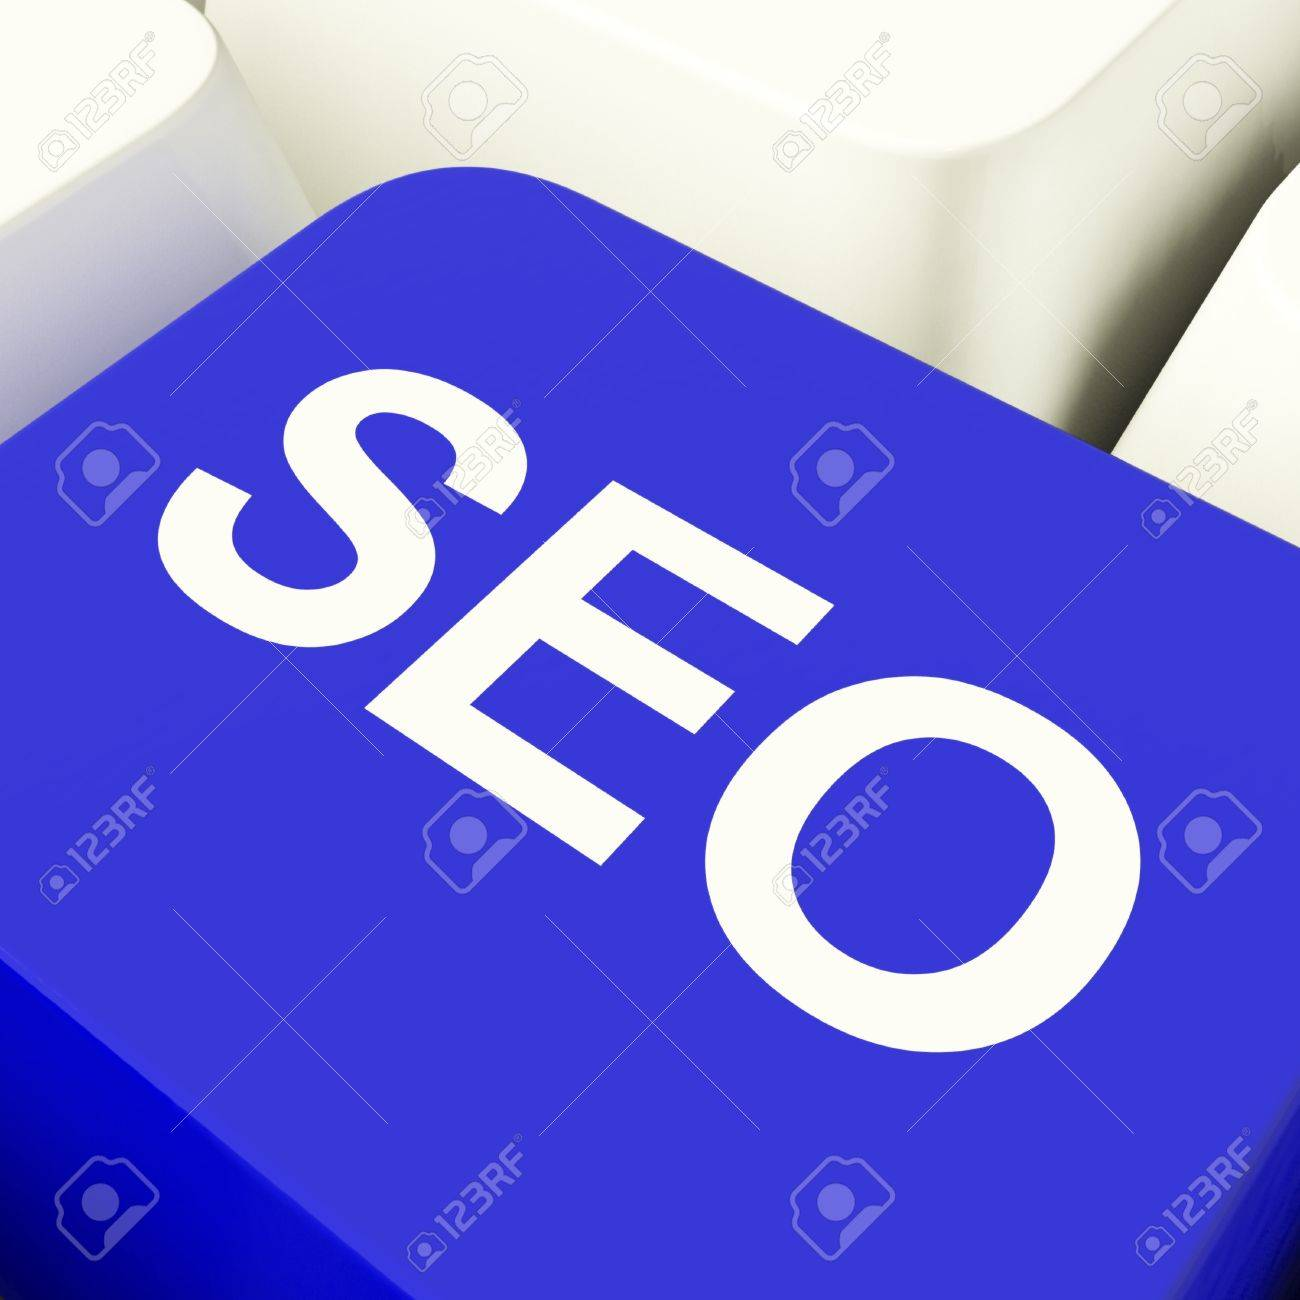 SEO Computer Key In Blue Showing Internet Marketing And Optimisation Stock Photo - 11947574